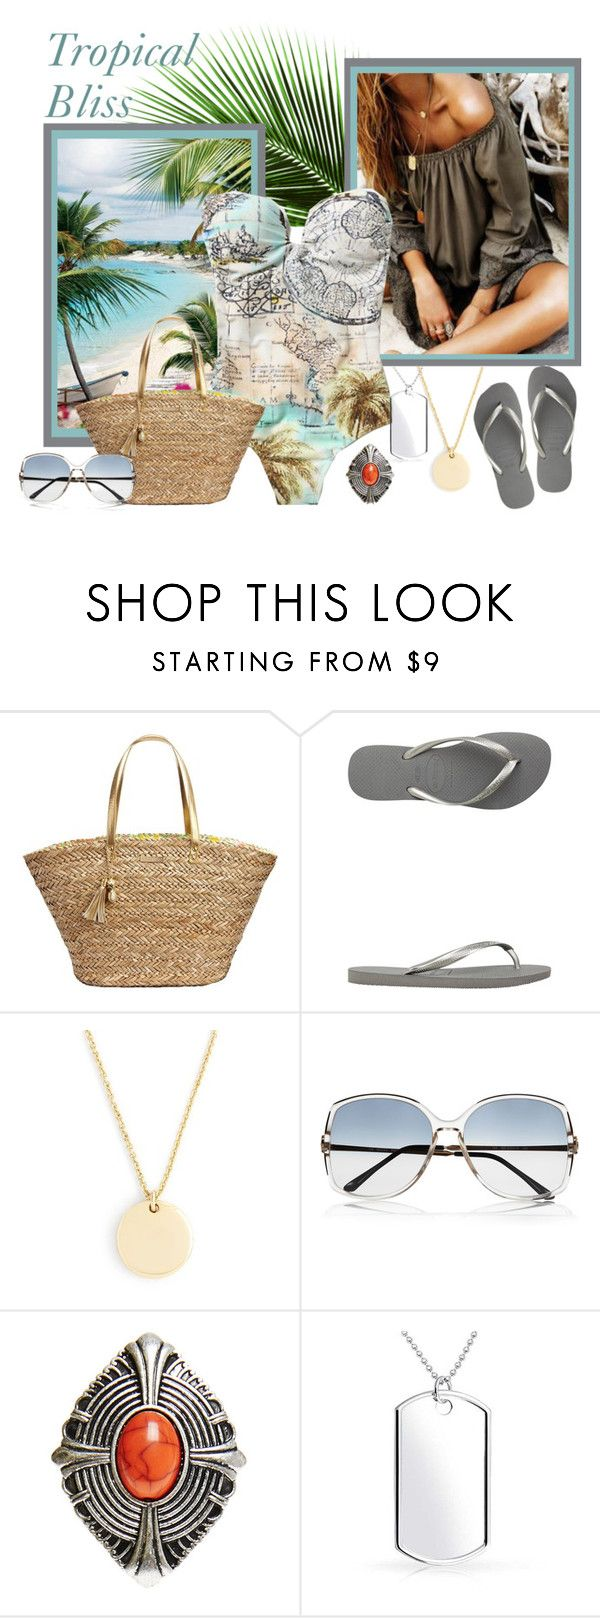 """""""Tropical Bliss"""" by citkat777 ❤ liked on Polyvore featuring Lilly Pulitzer, Havaianas, J.Crew, Retrosun, Wet Seal and Bling Jewelry"""